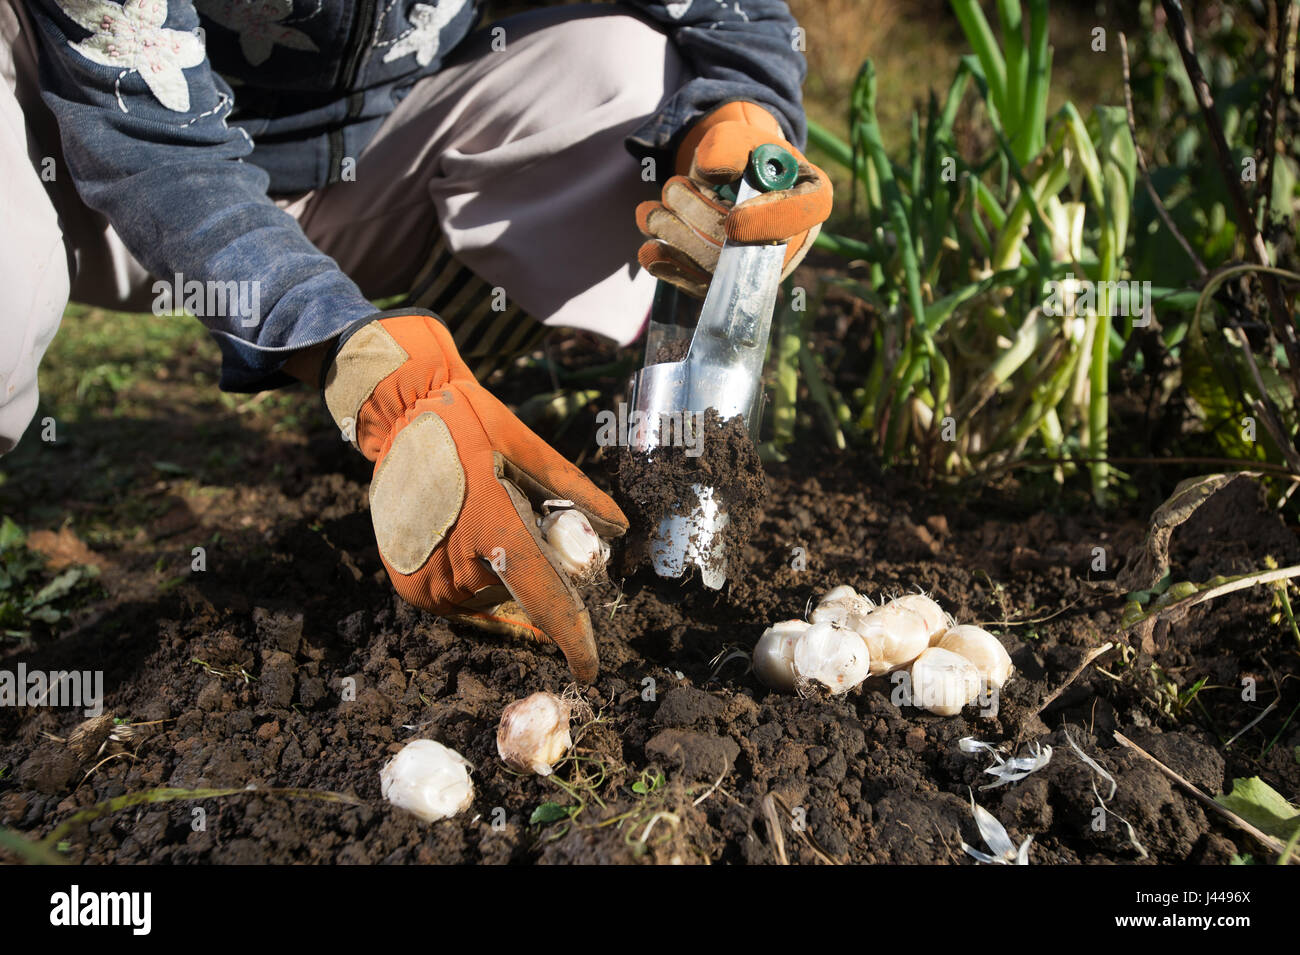 Close Up Of Hand With Gloves Planting Bulbs With Flower Bulb Planter